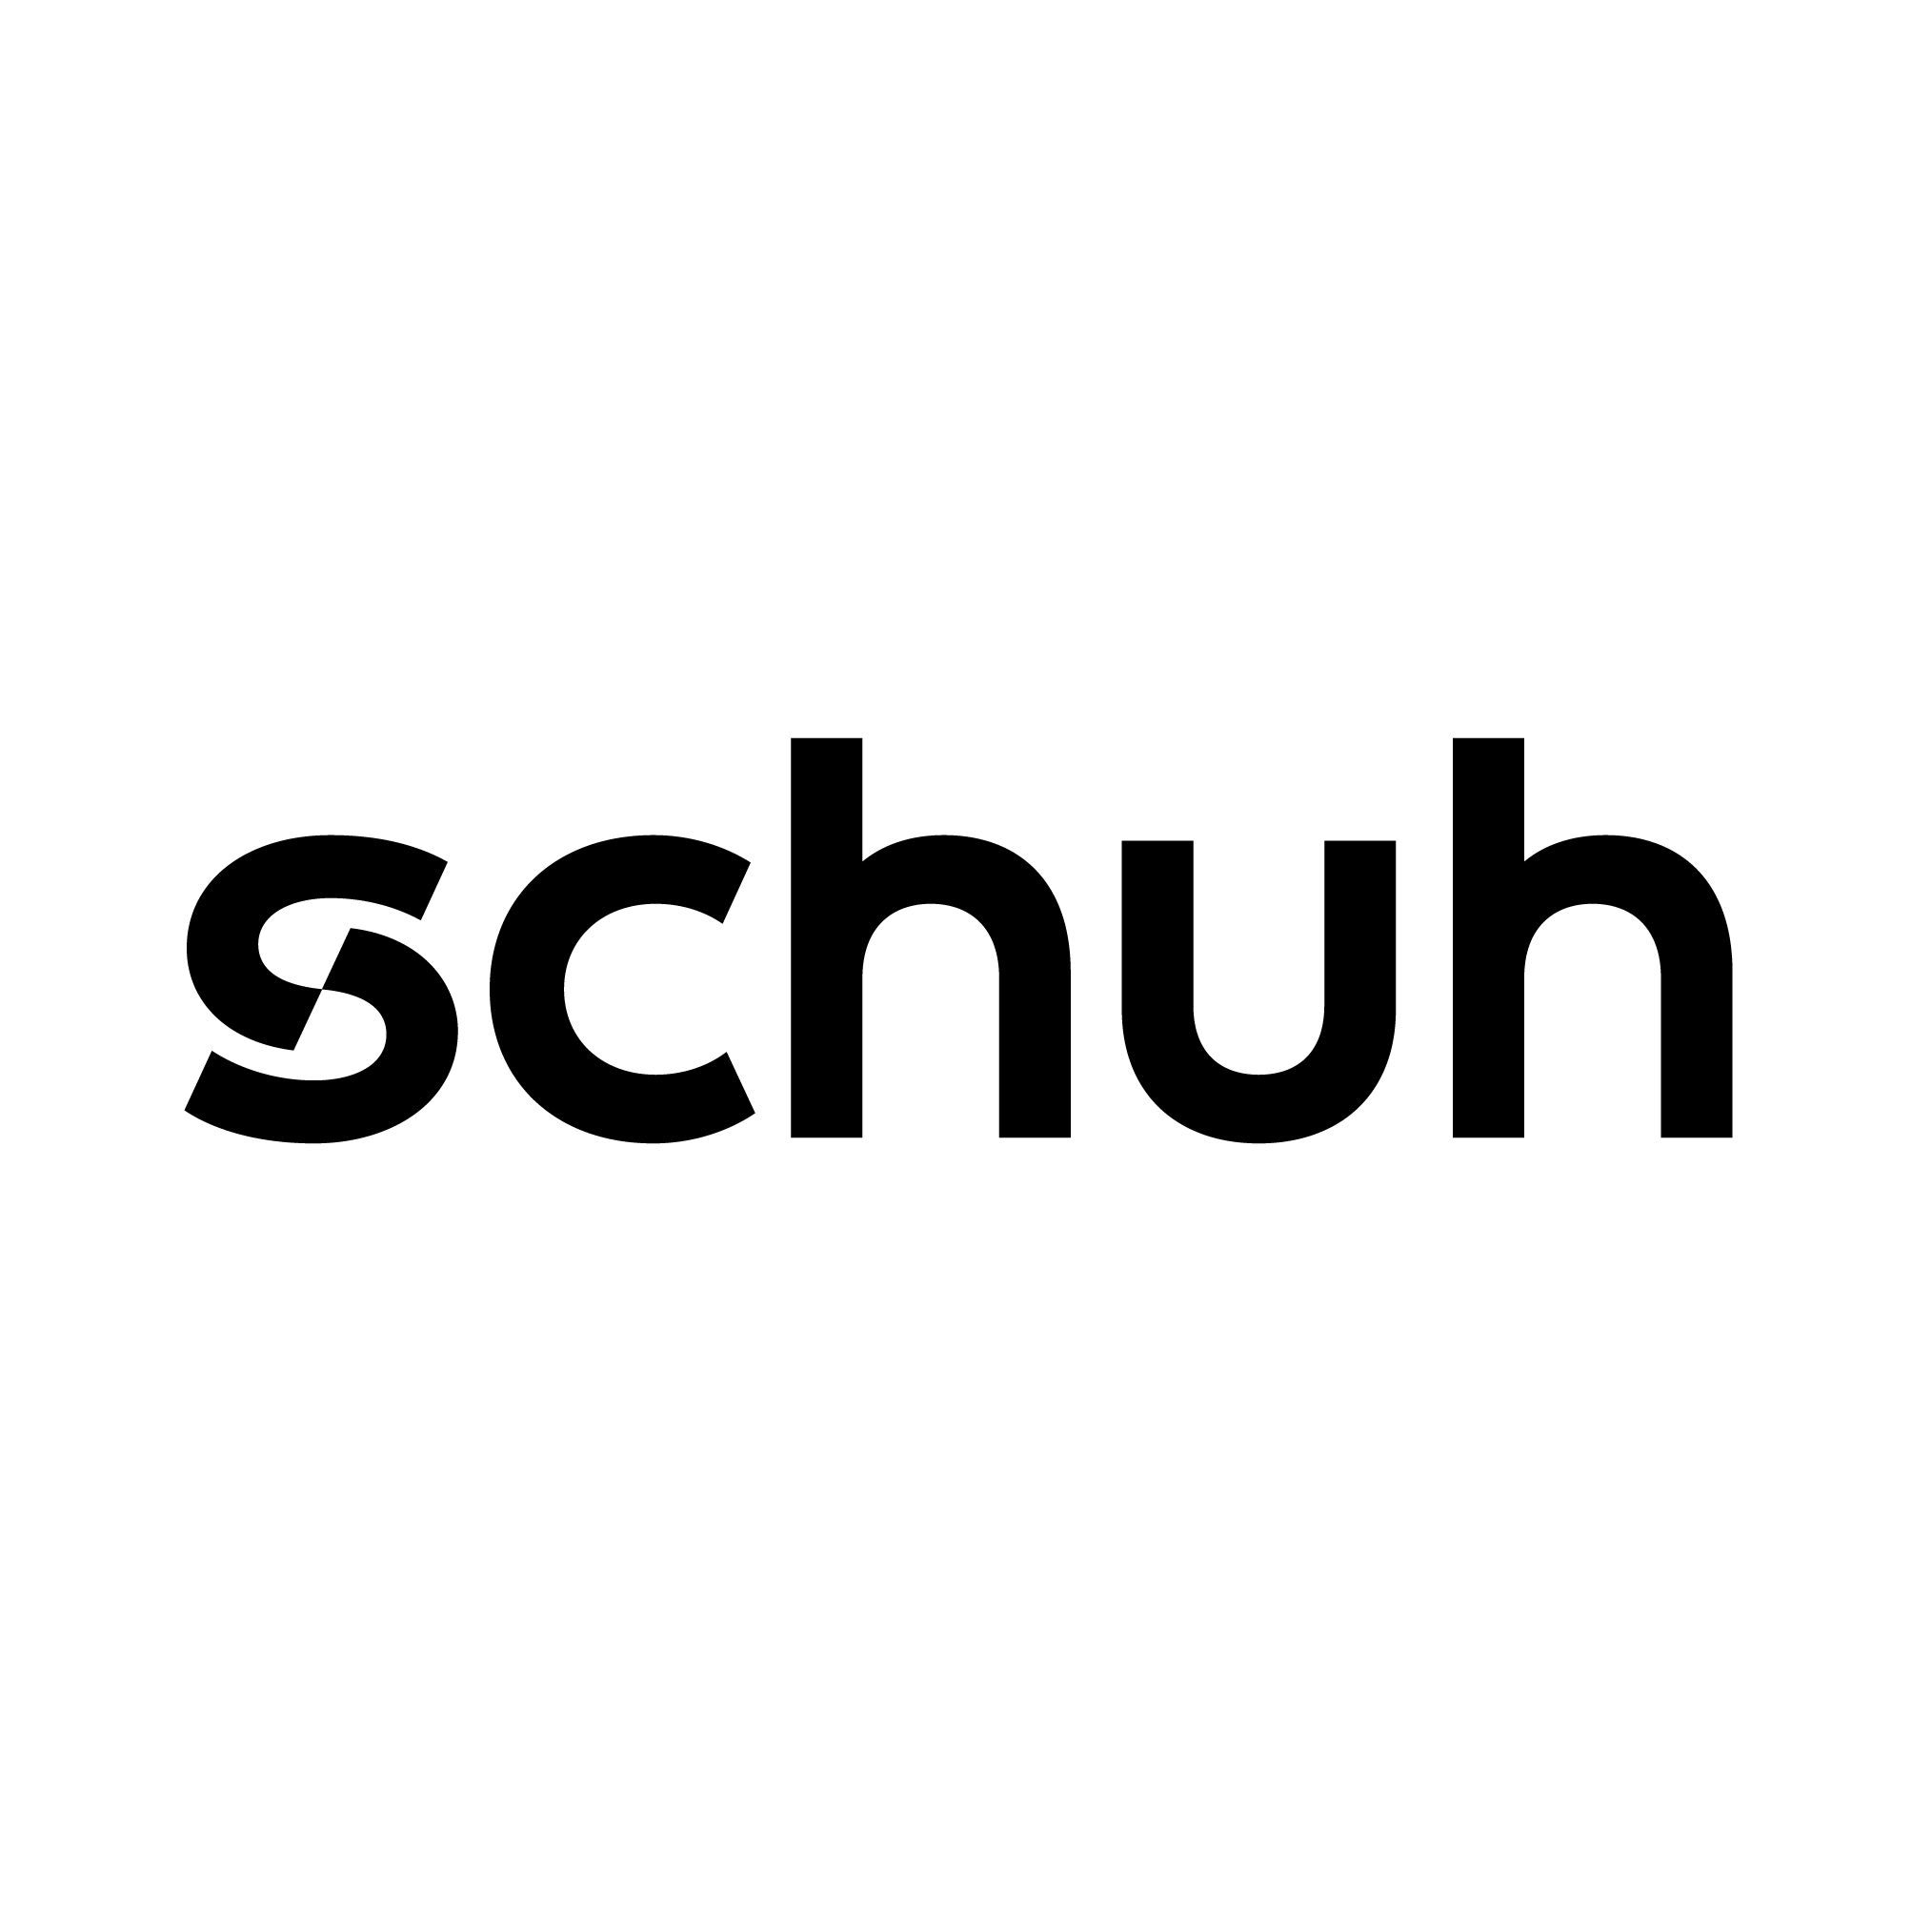 schuh - Fareham, Hampshire PO15 7PD - 01489 854919 | ShowMeLocal.com